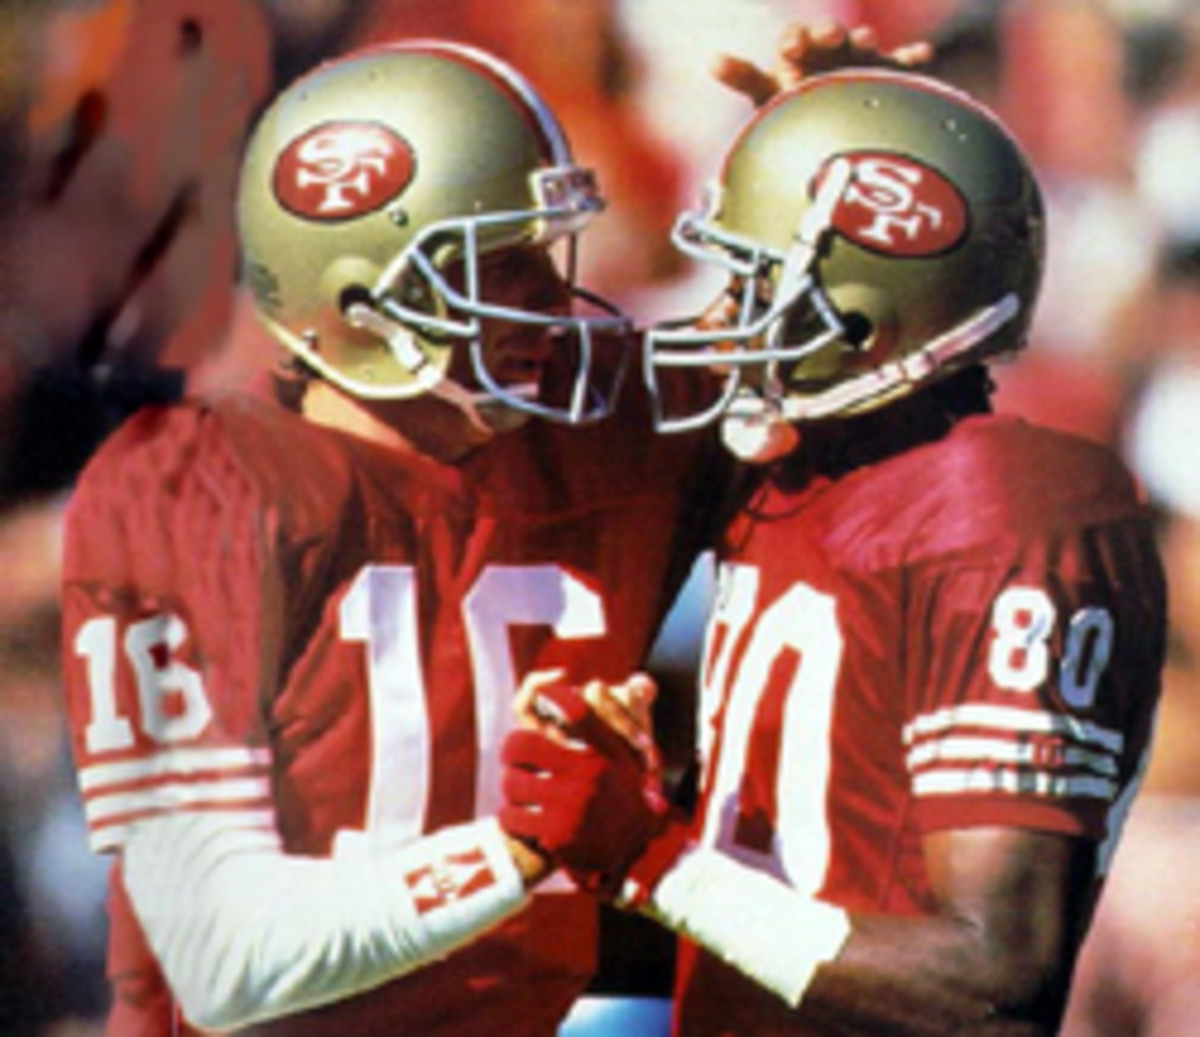 QB Joe Montana (right) and wide receiver Jerry Rice celebrate during Super Bowl XXIV against the Denver Broncos at the Superdome in New Orleans, Louisiana Jan 28,1990